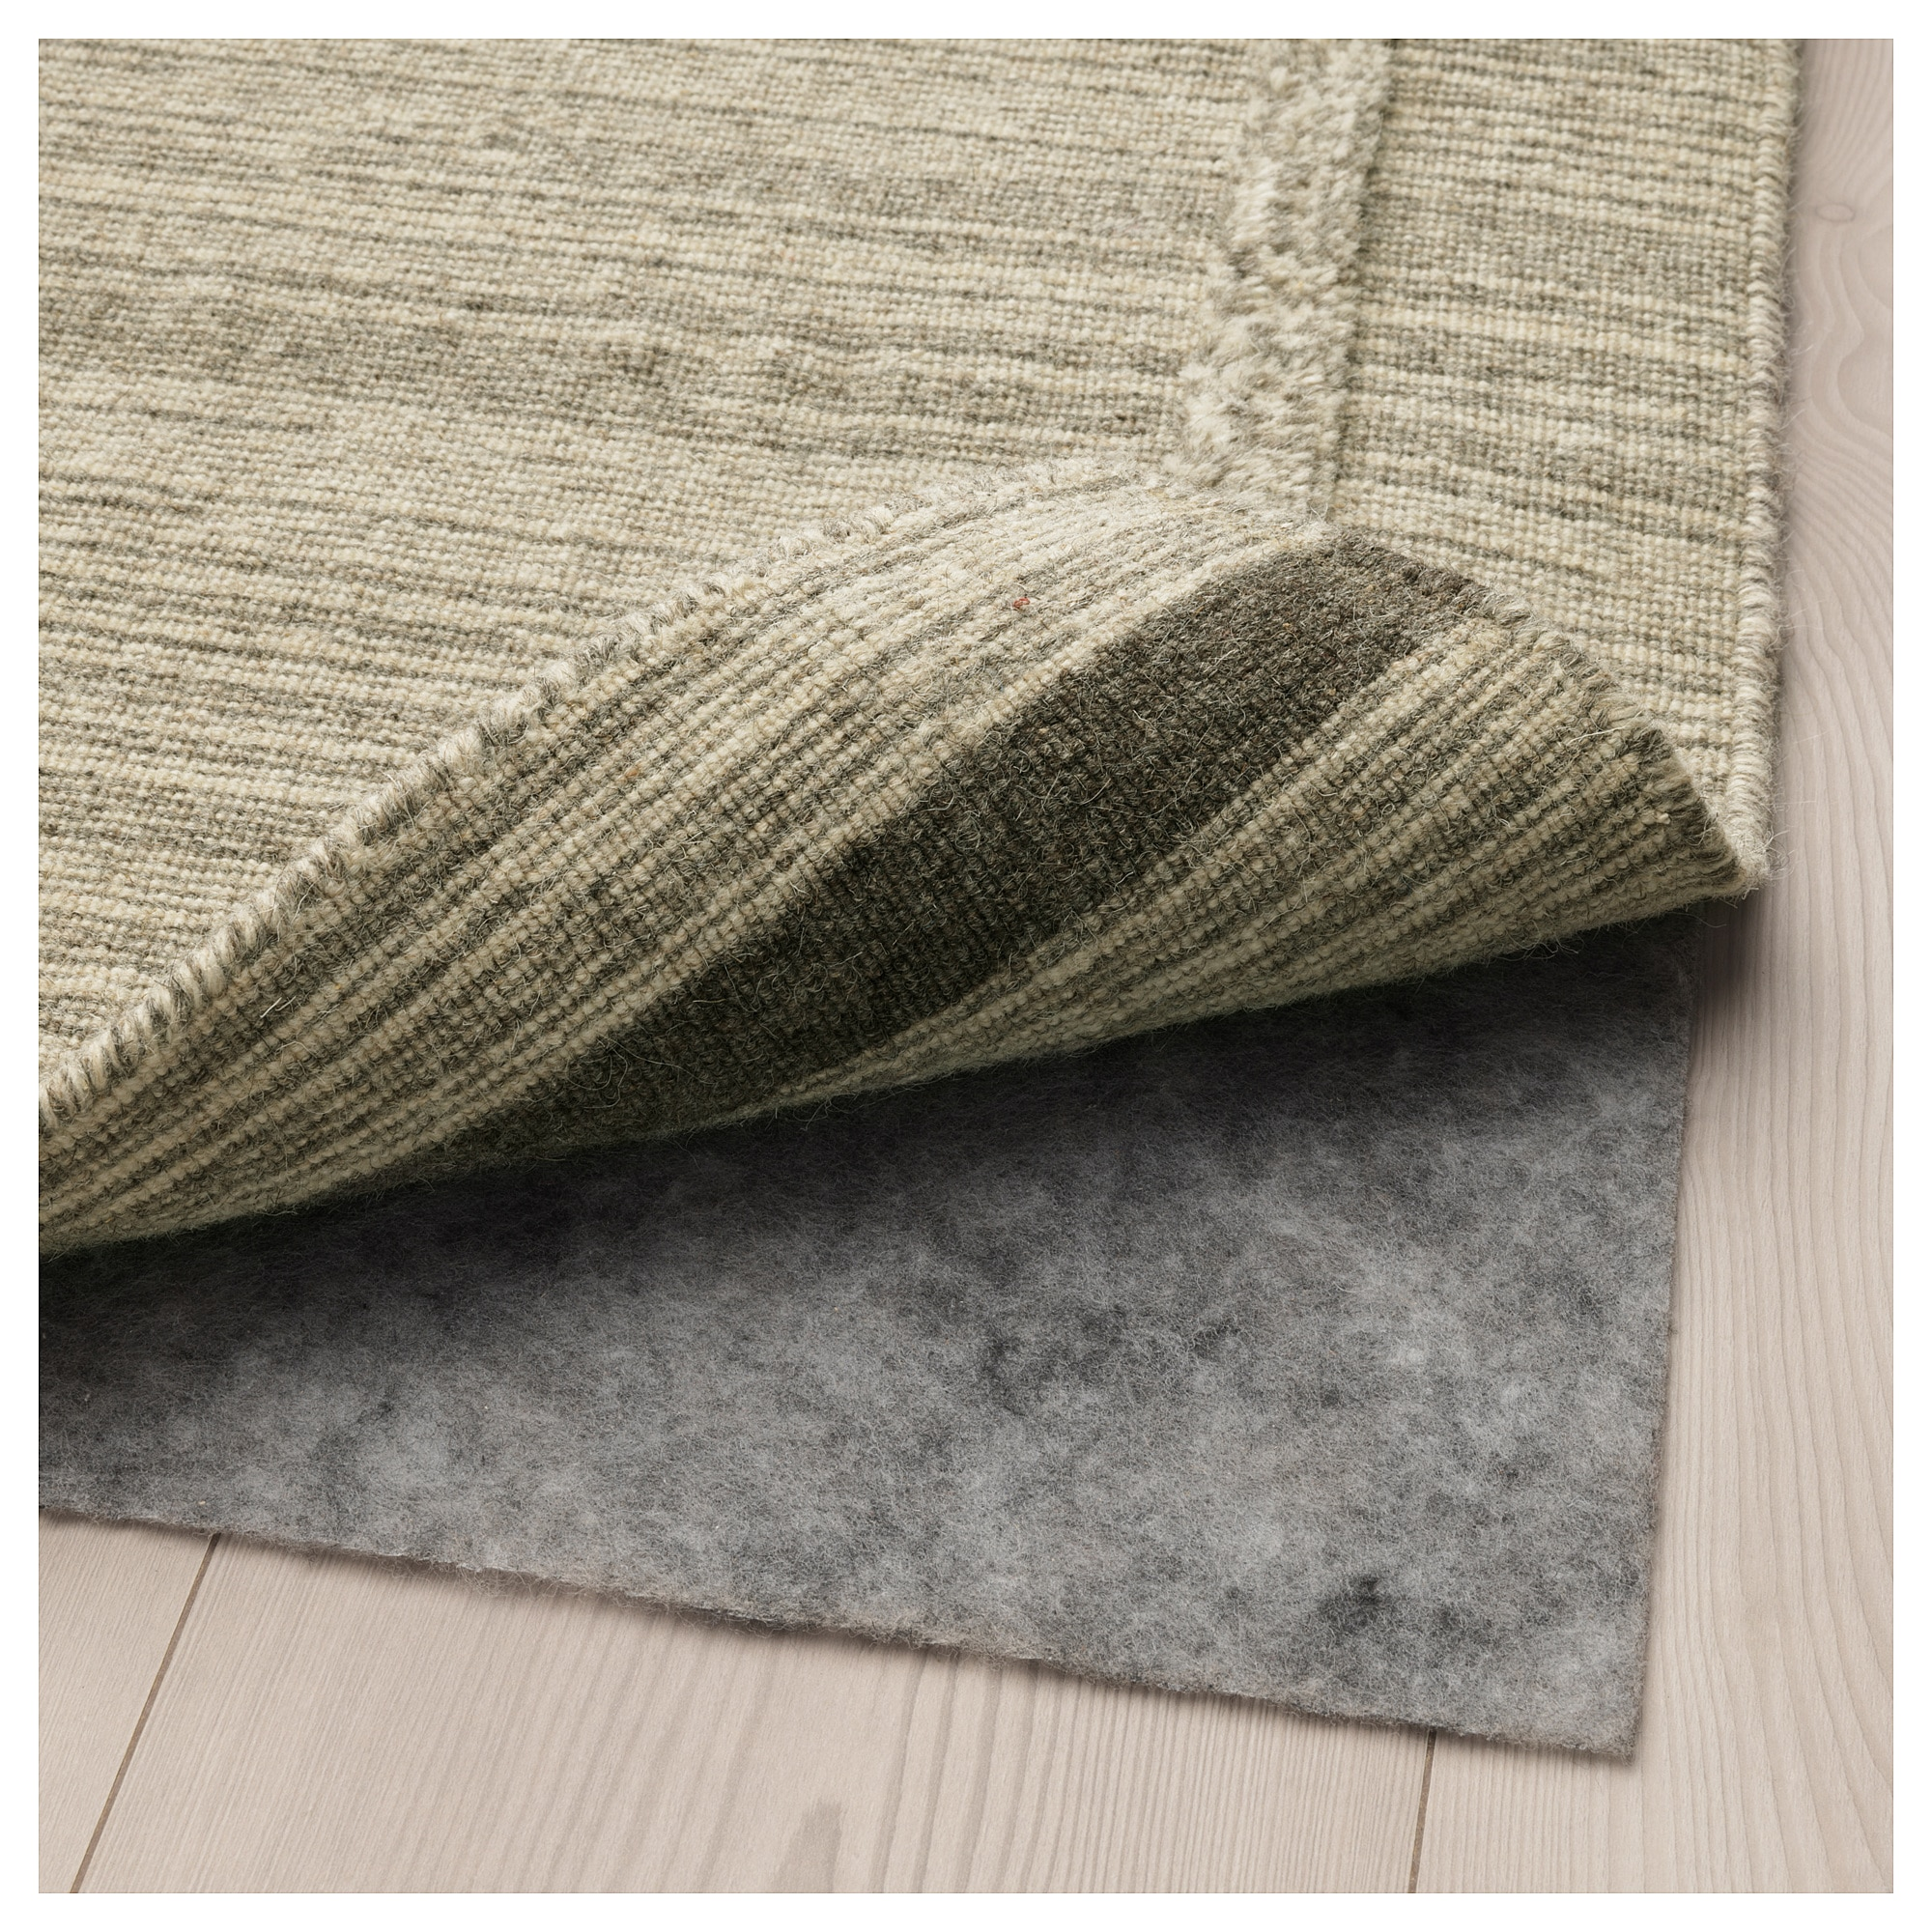 our natural instead inferior most az longest pads deluxe cut scottsdale floors hardwood rug some prices market synthetic of custom rubber on the durable products we latex are pad unbeatable use lasting for best super